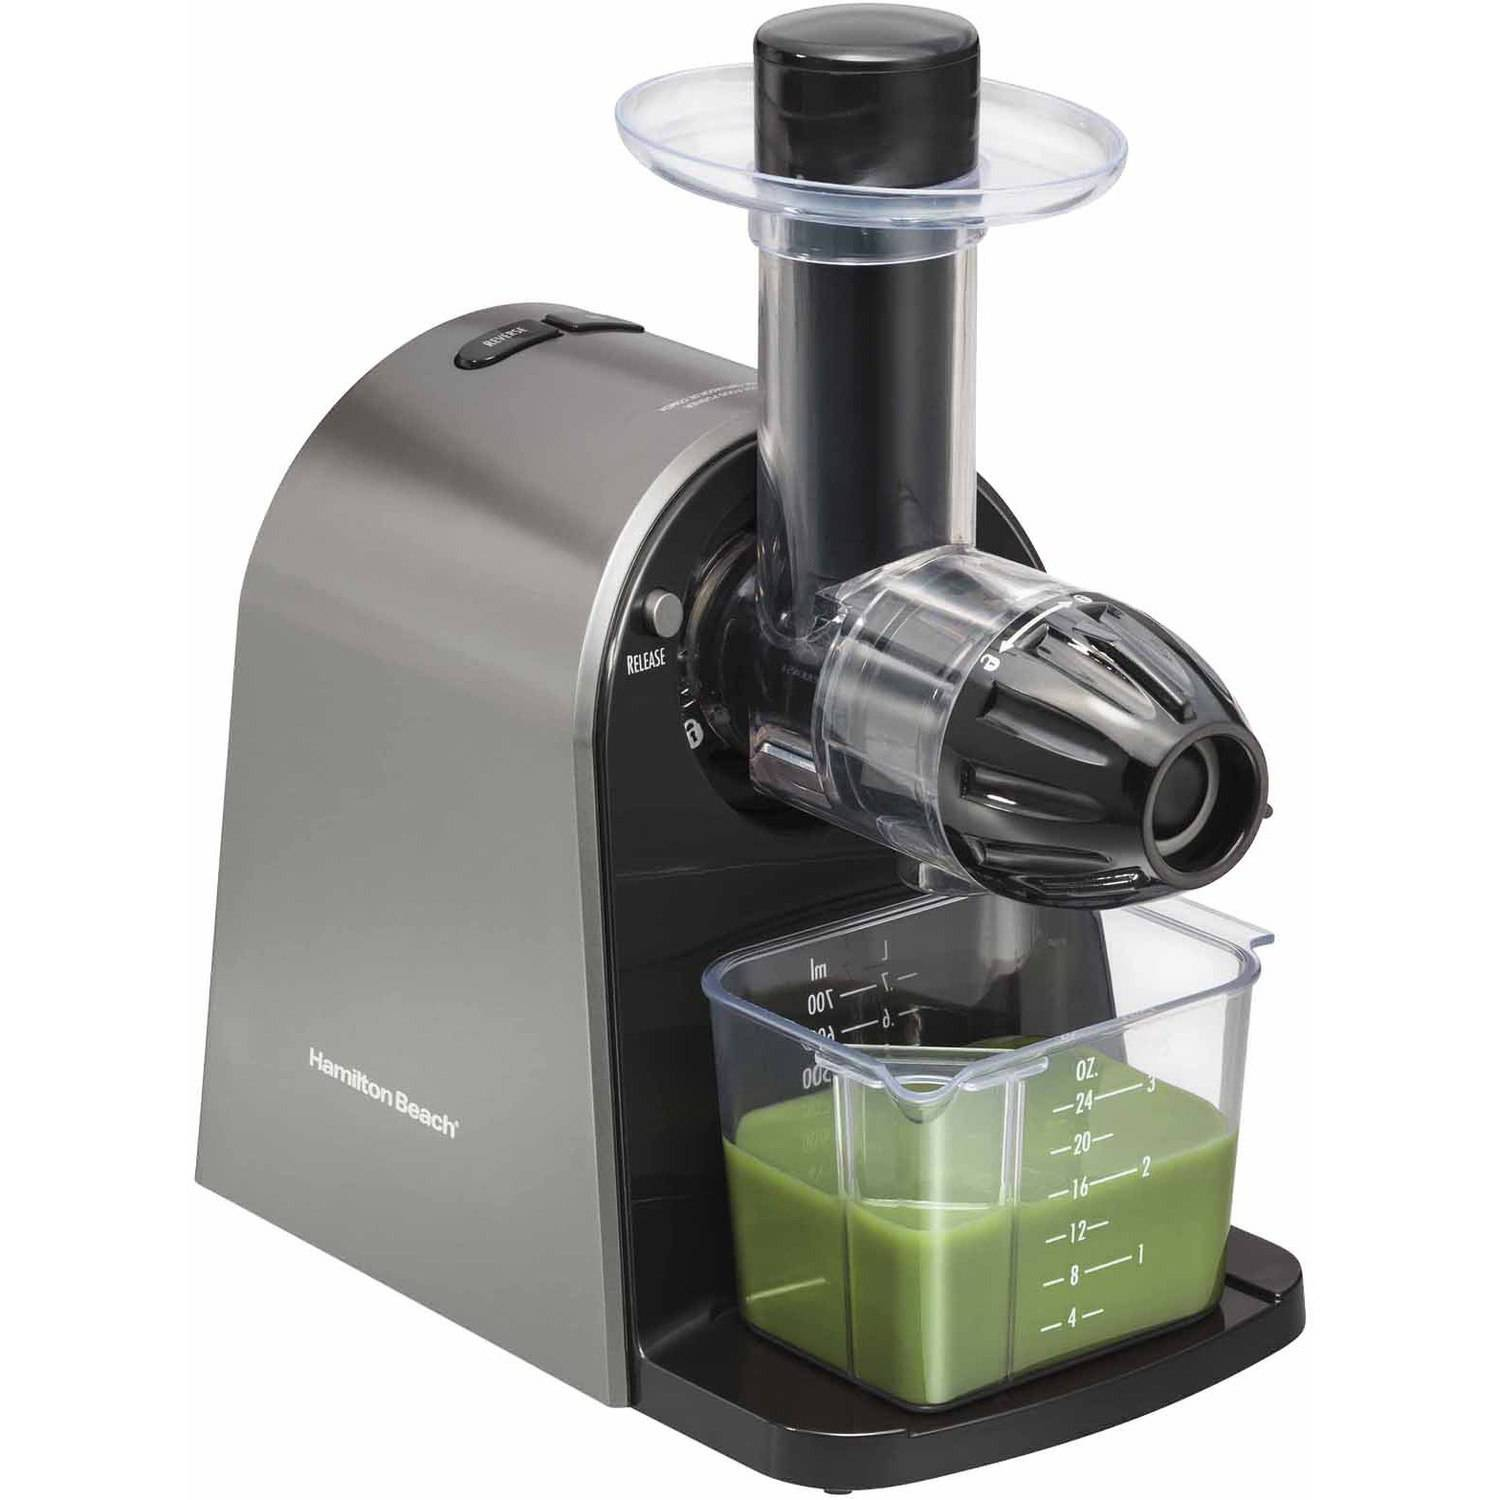 Slow Juicer Eksi : Cold Press Juicer Machine - Masticating Juicer Slow Juice ...